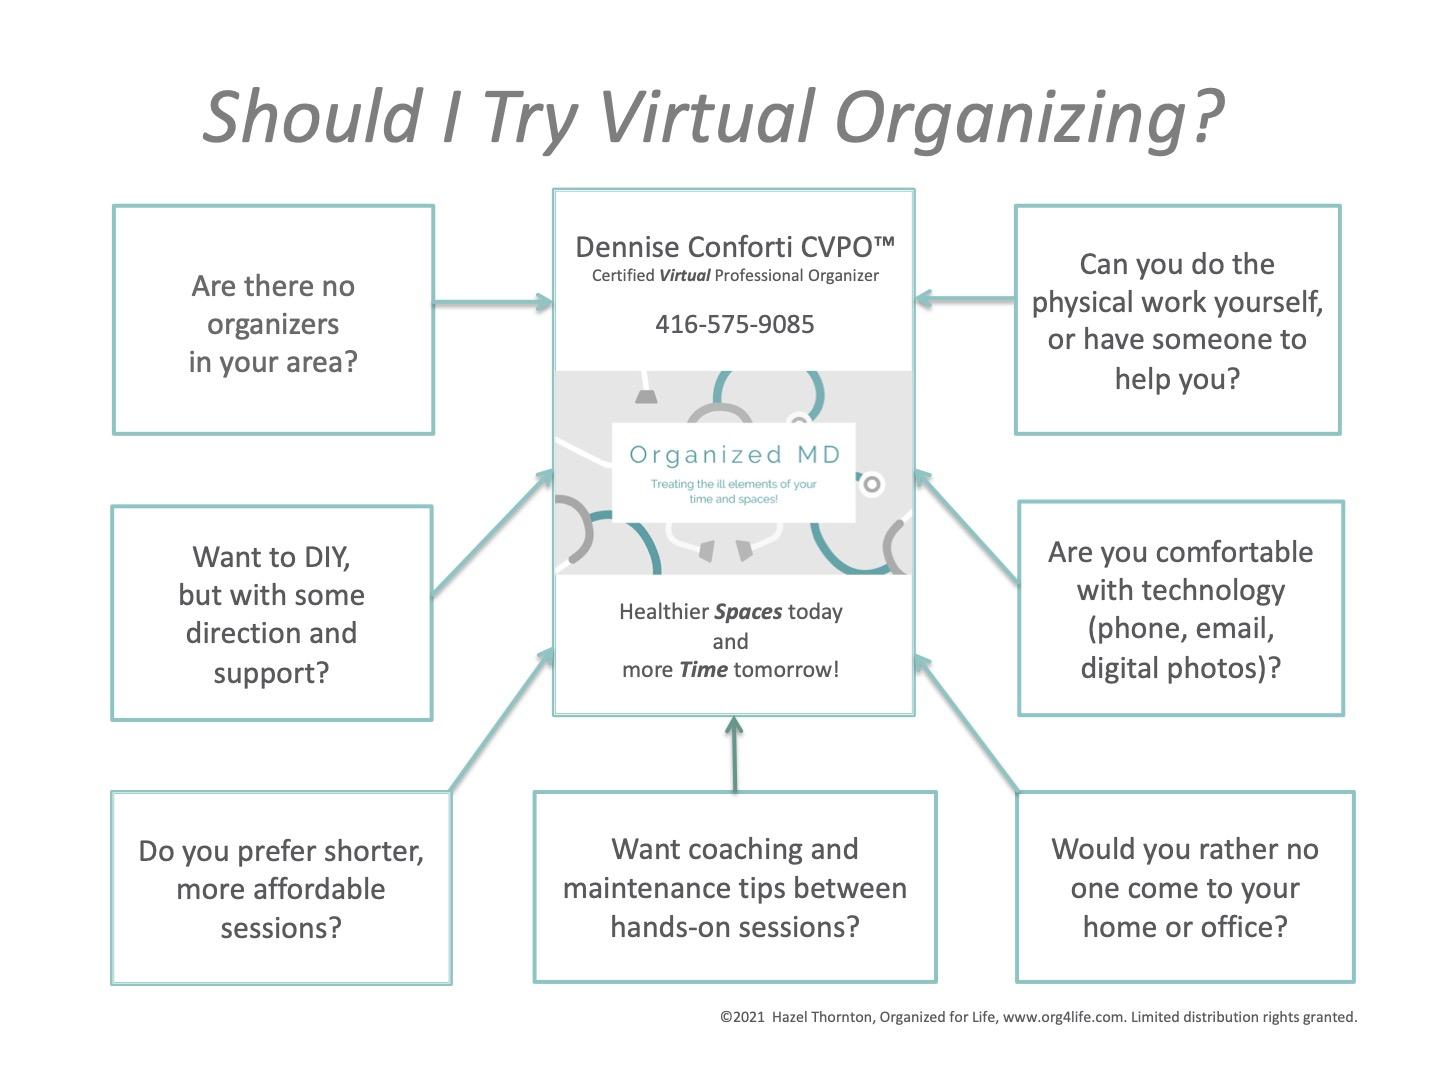 Should I try virtual Organizing? There are many benefits contact Dennise today at 416-575-9085 to learn more.